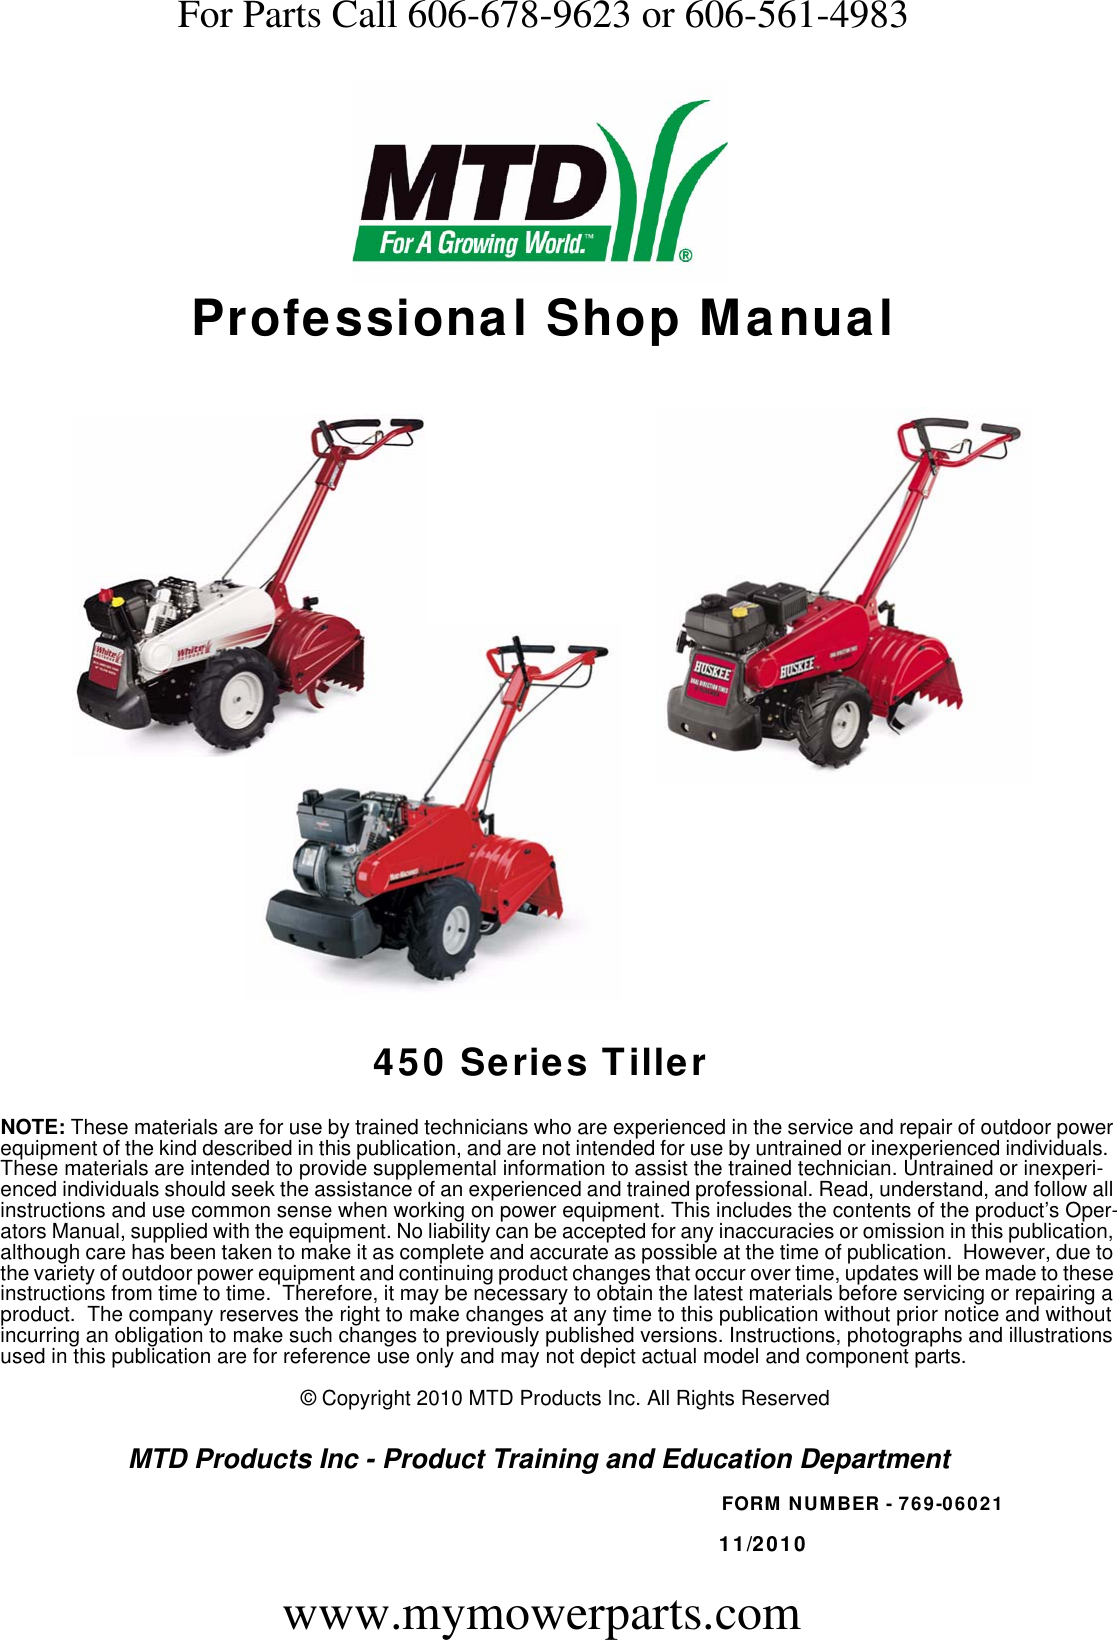 450 Series Tillers    Rear Tine Tiller Repair Manual Cub